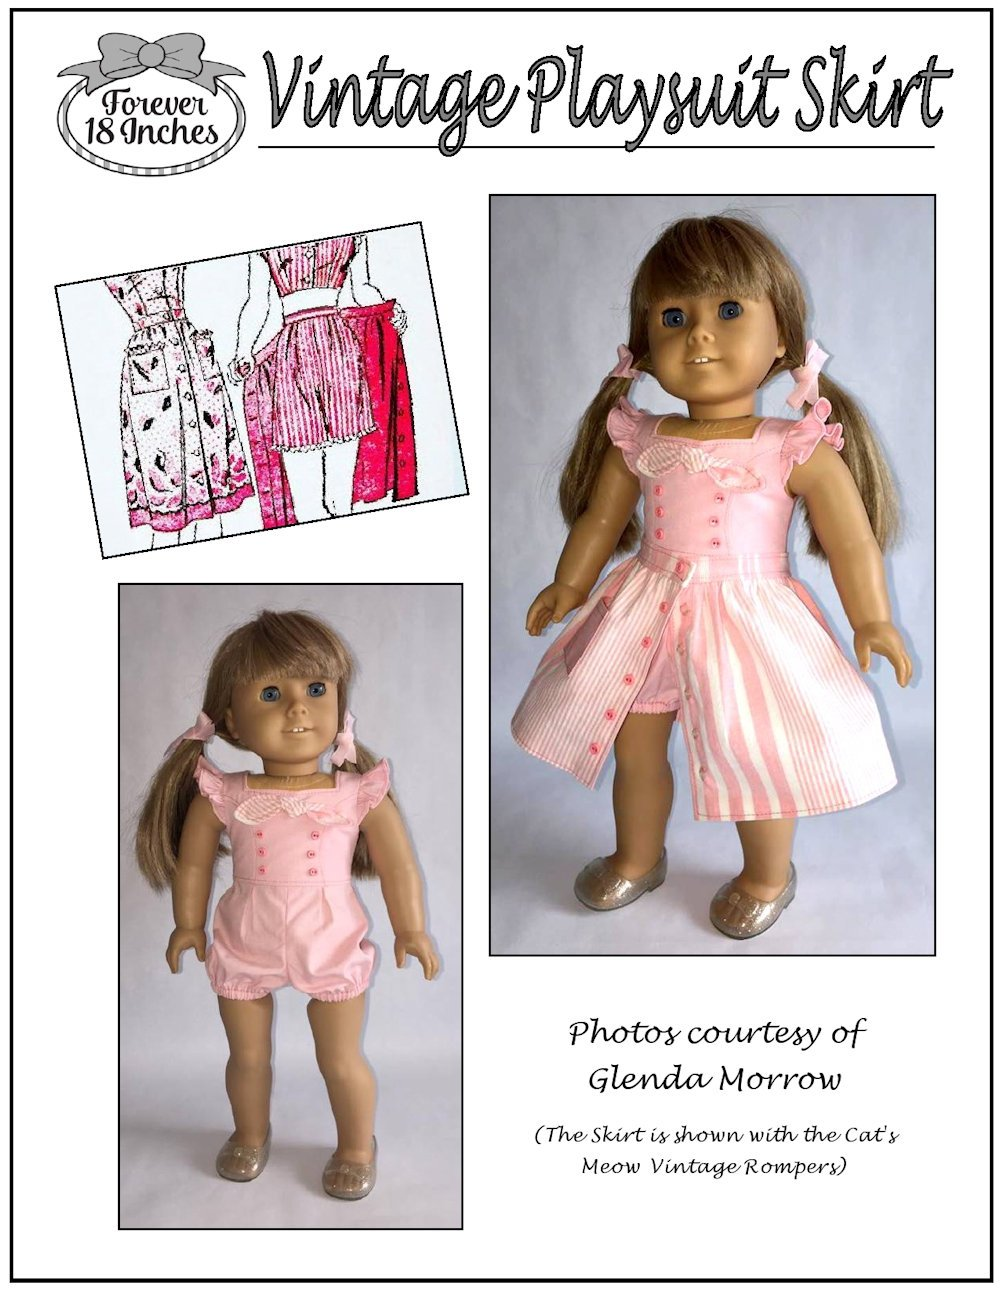 b241abc400 Forever 18 Inches Vintage Playsuit Skirt Doll Clothes Pattern 18 ...